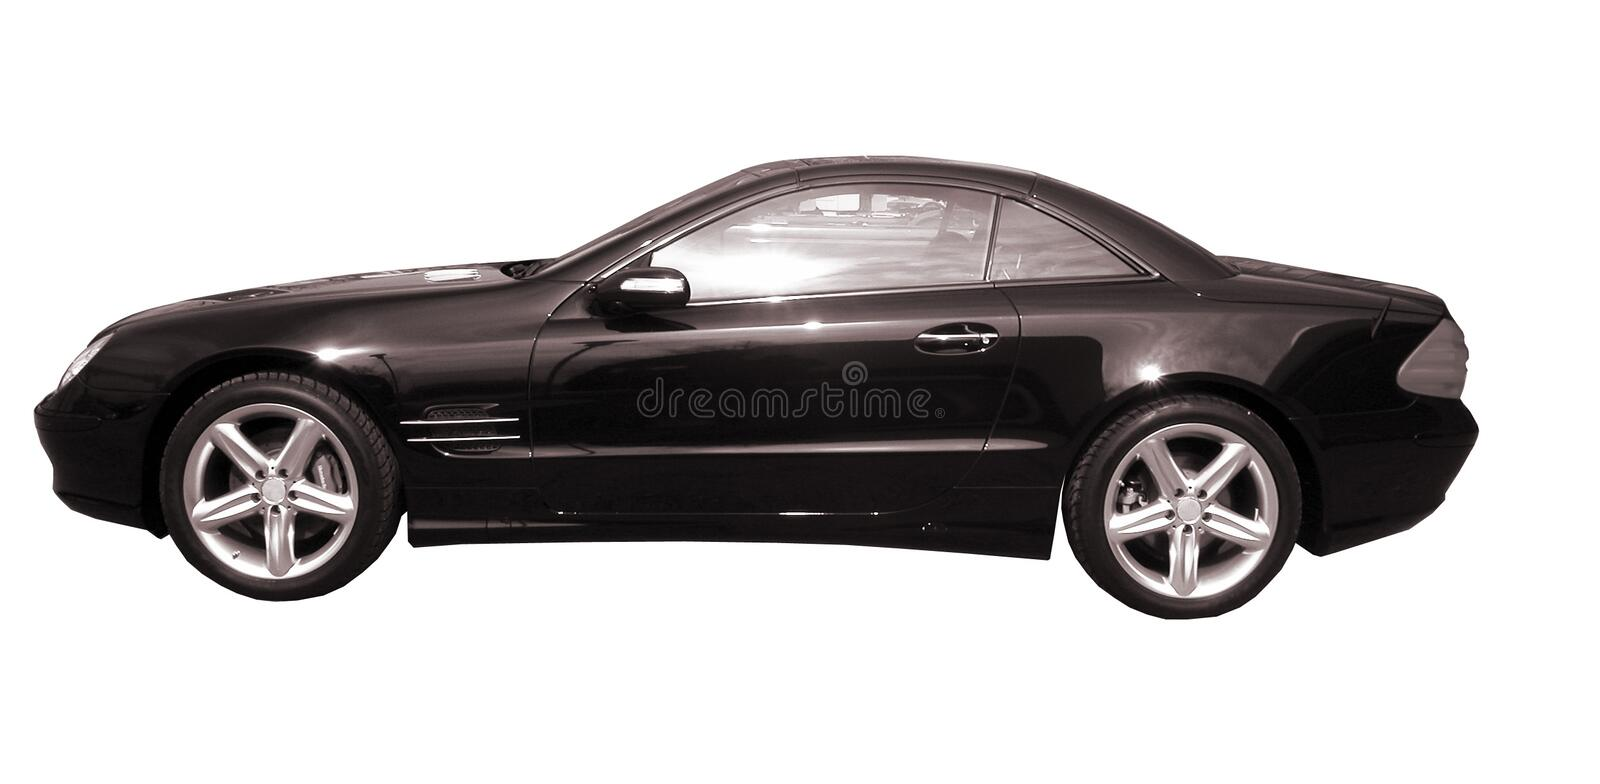 Black car stock image